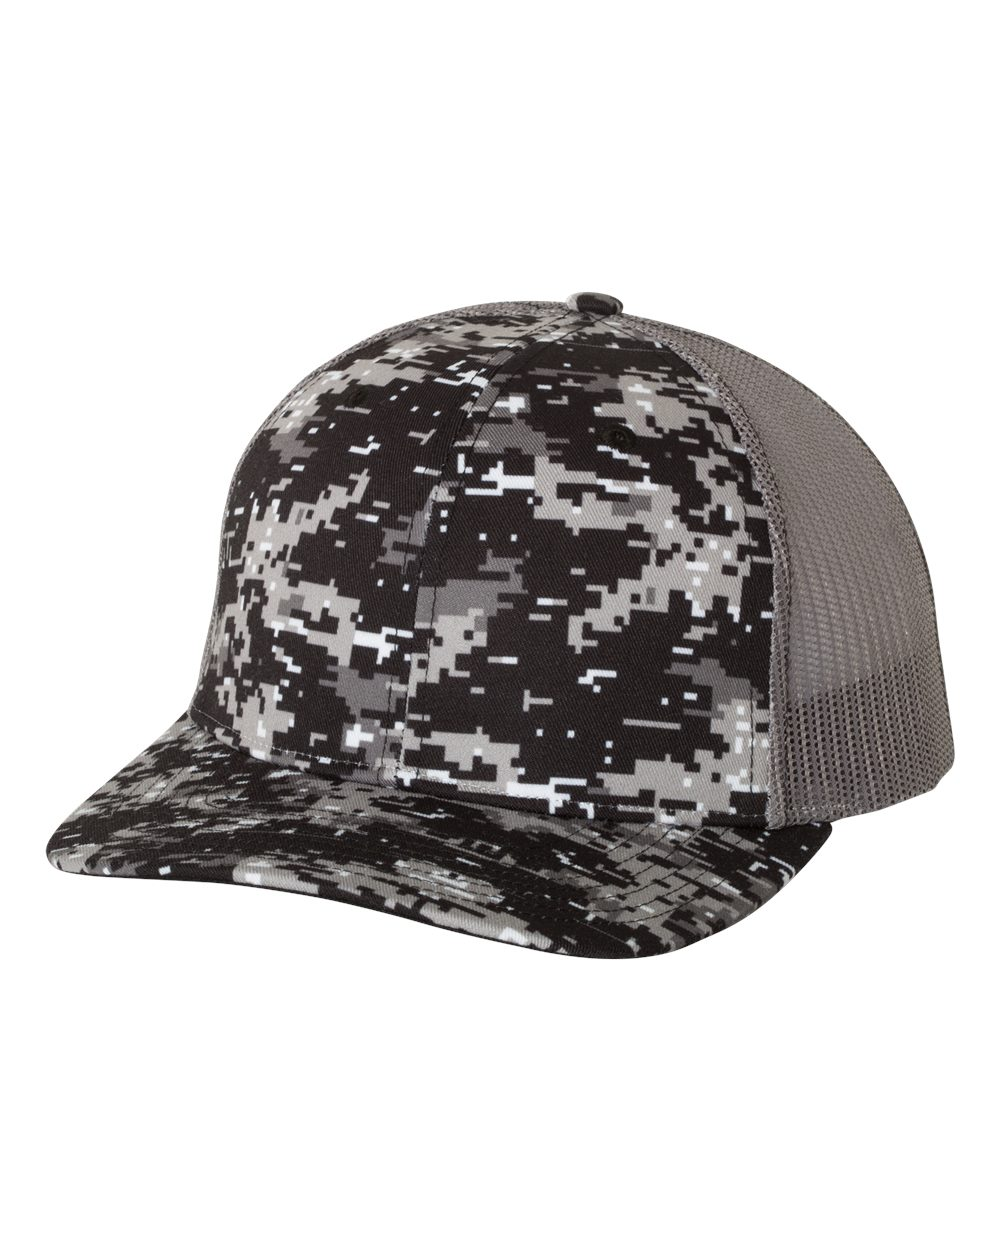 Richardson 112P - Patterned Snapback Trucker Cap